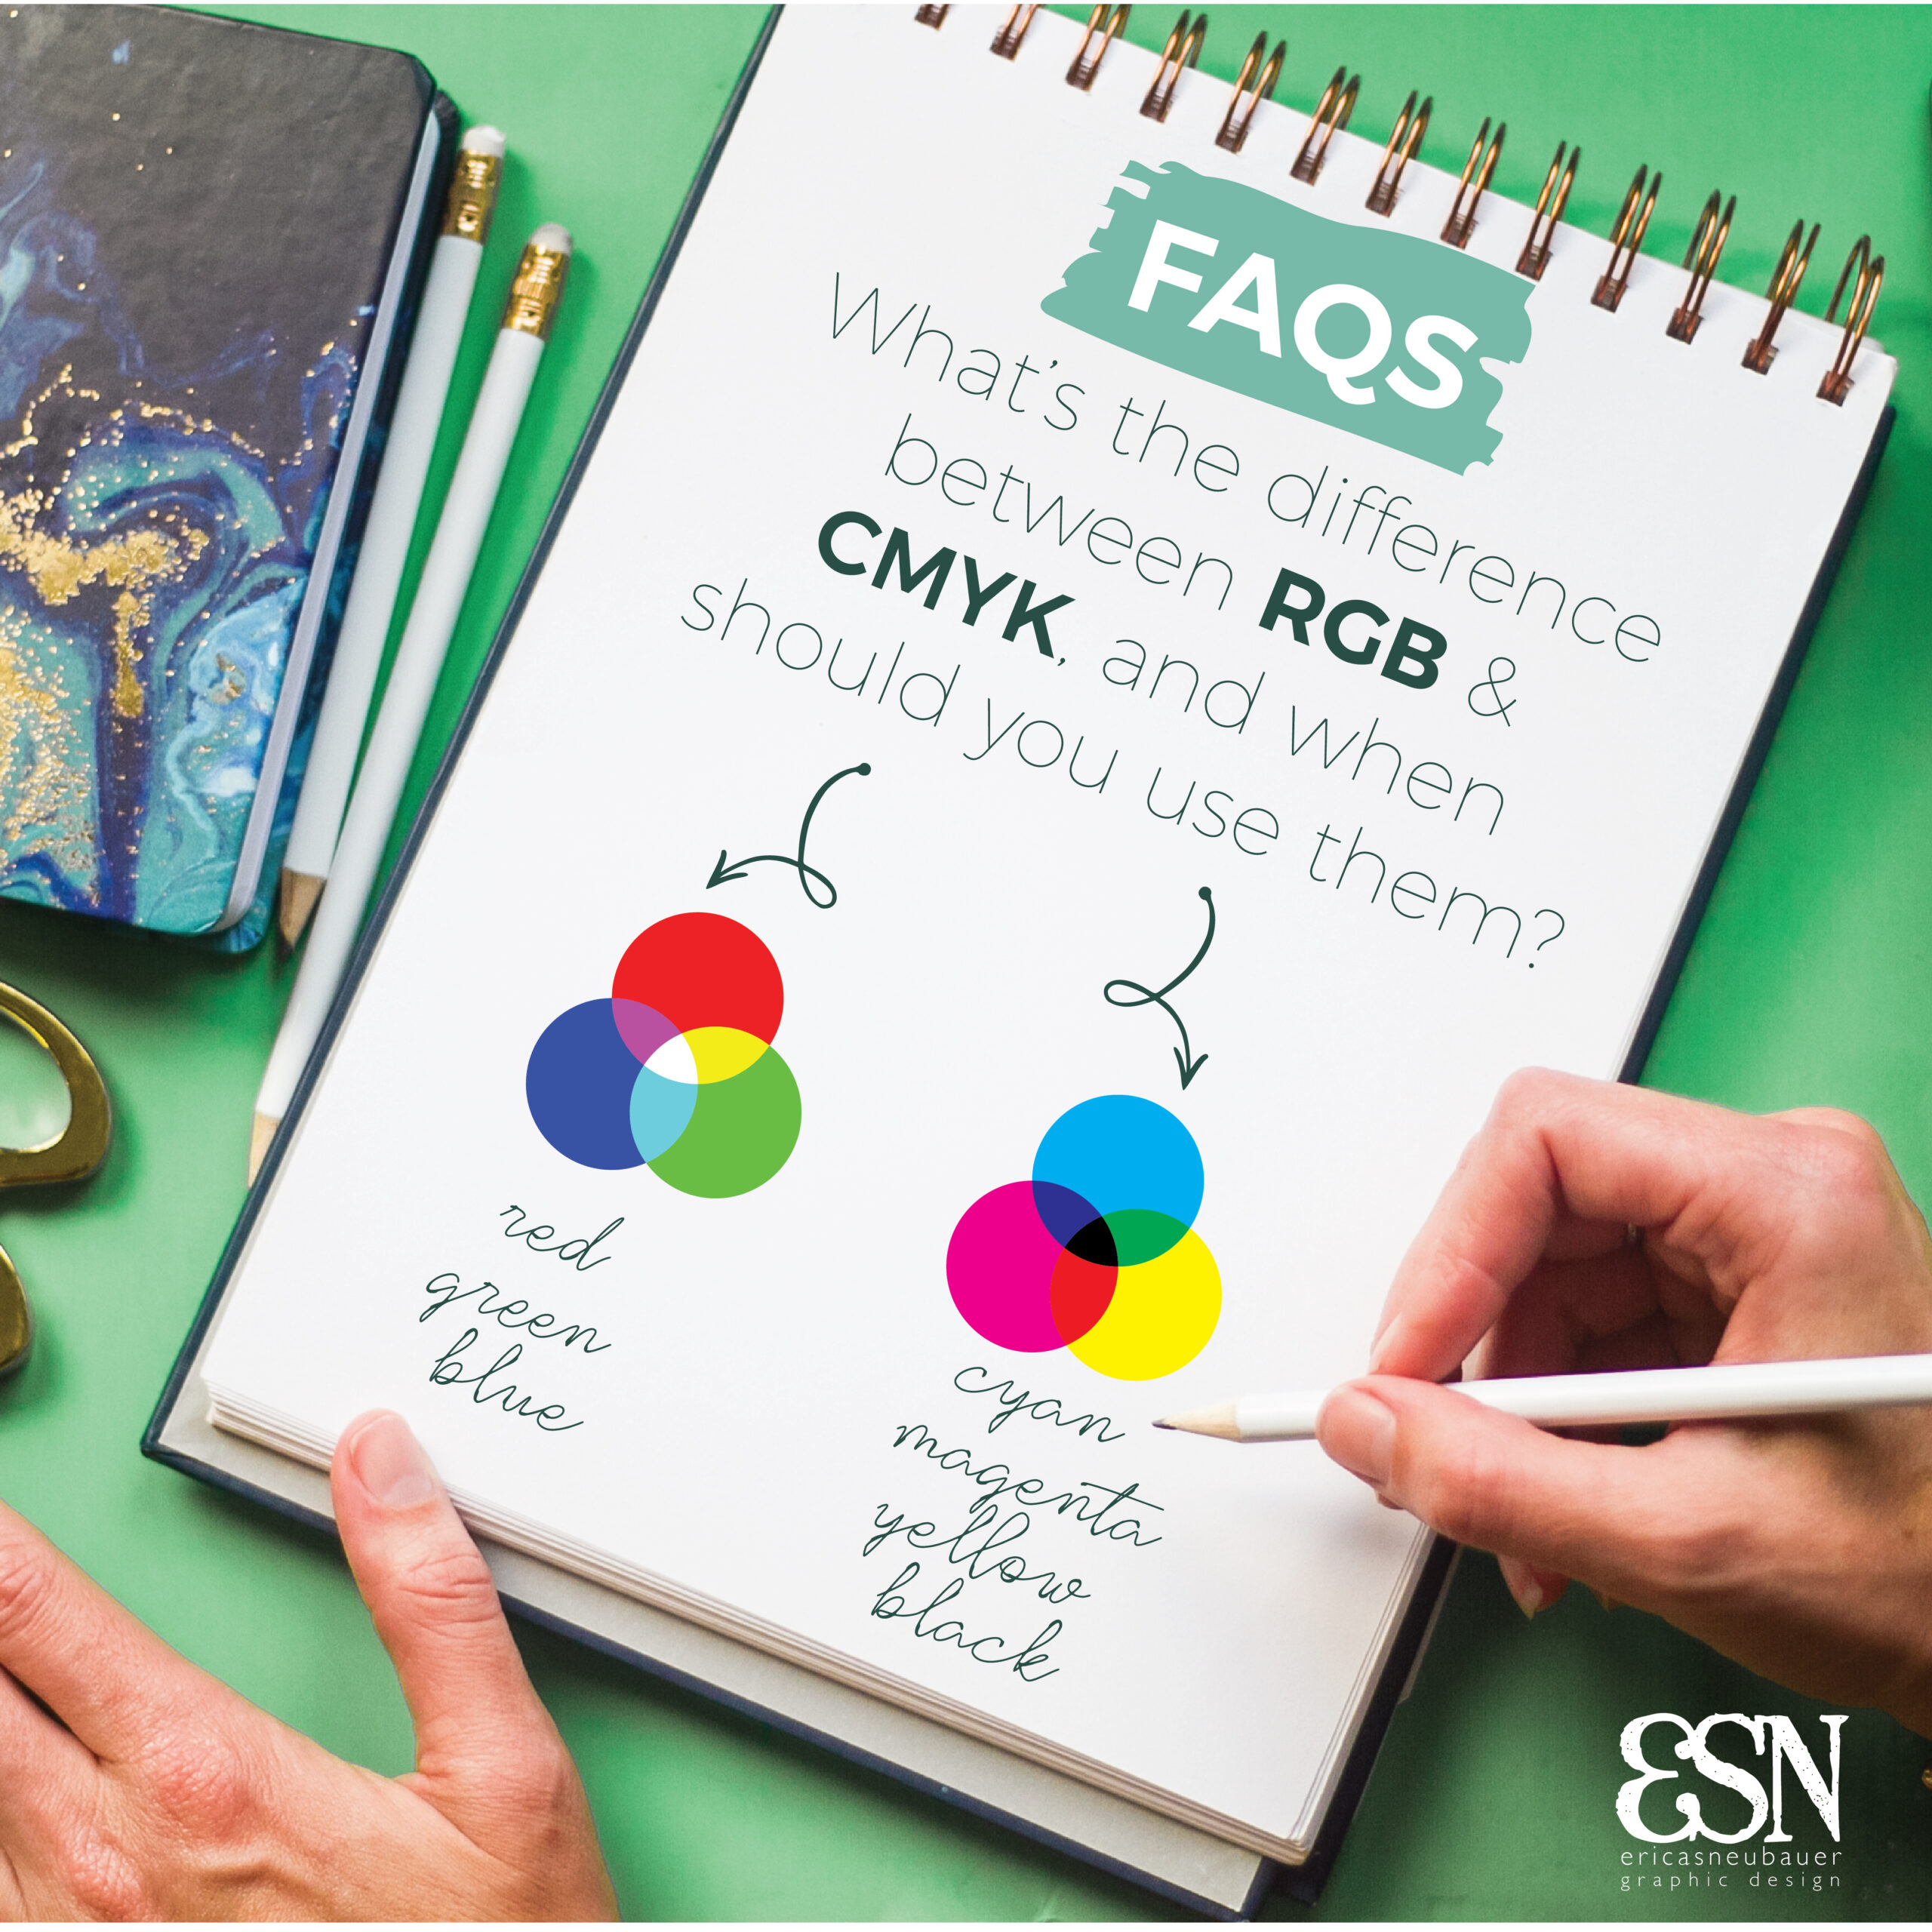 white sketchbook showing title: What's the difference between RGB & CMYK and when should you use them?